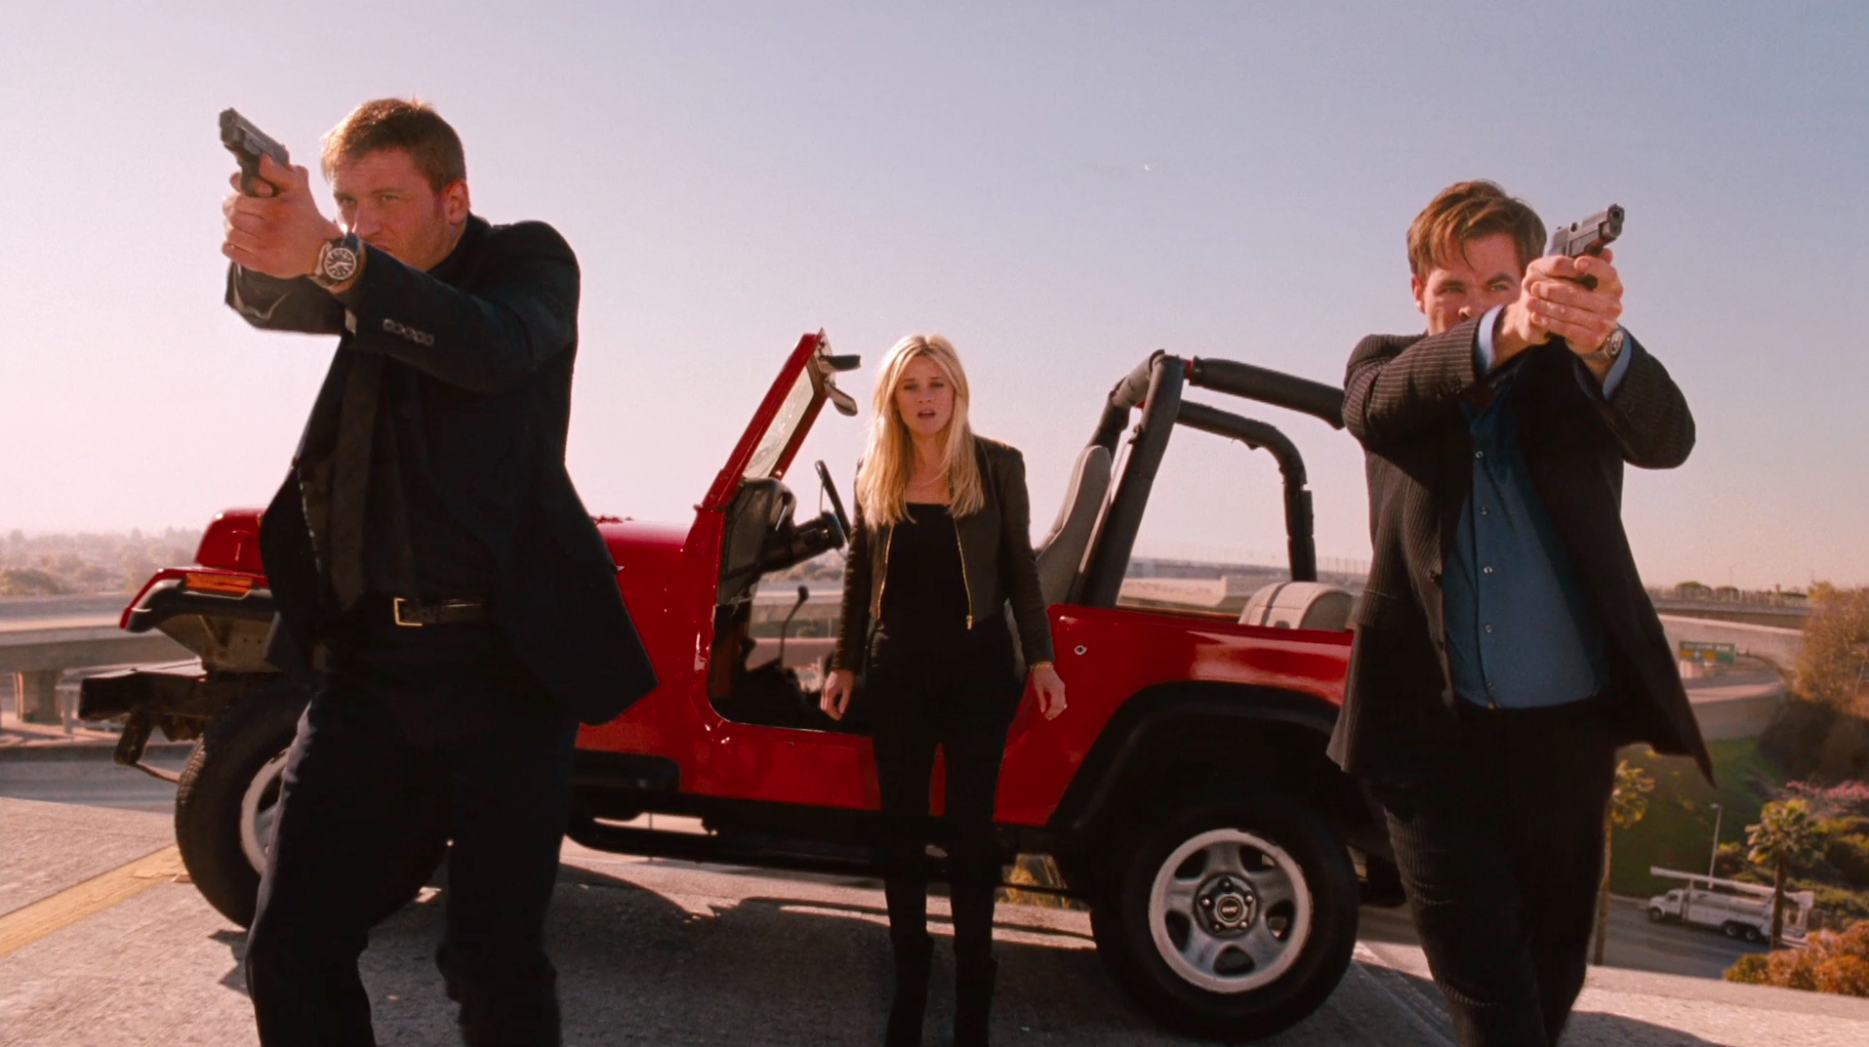 FXX - THIS MEANS WAR (TV20)